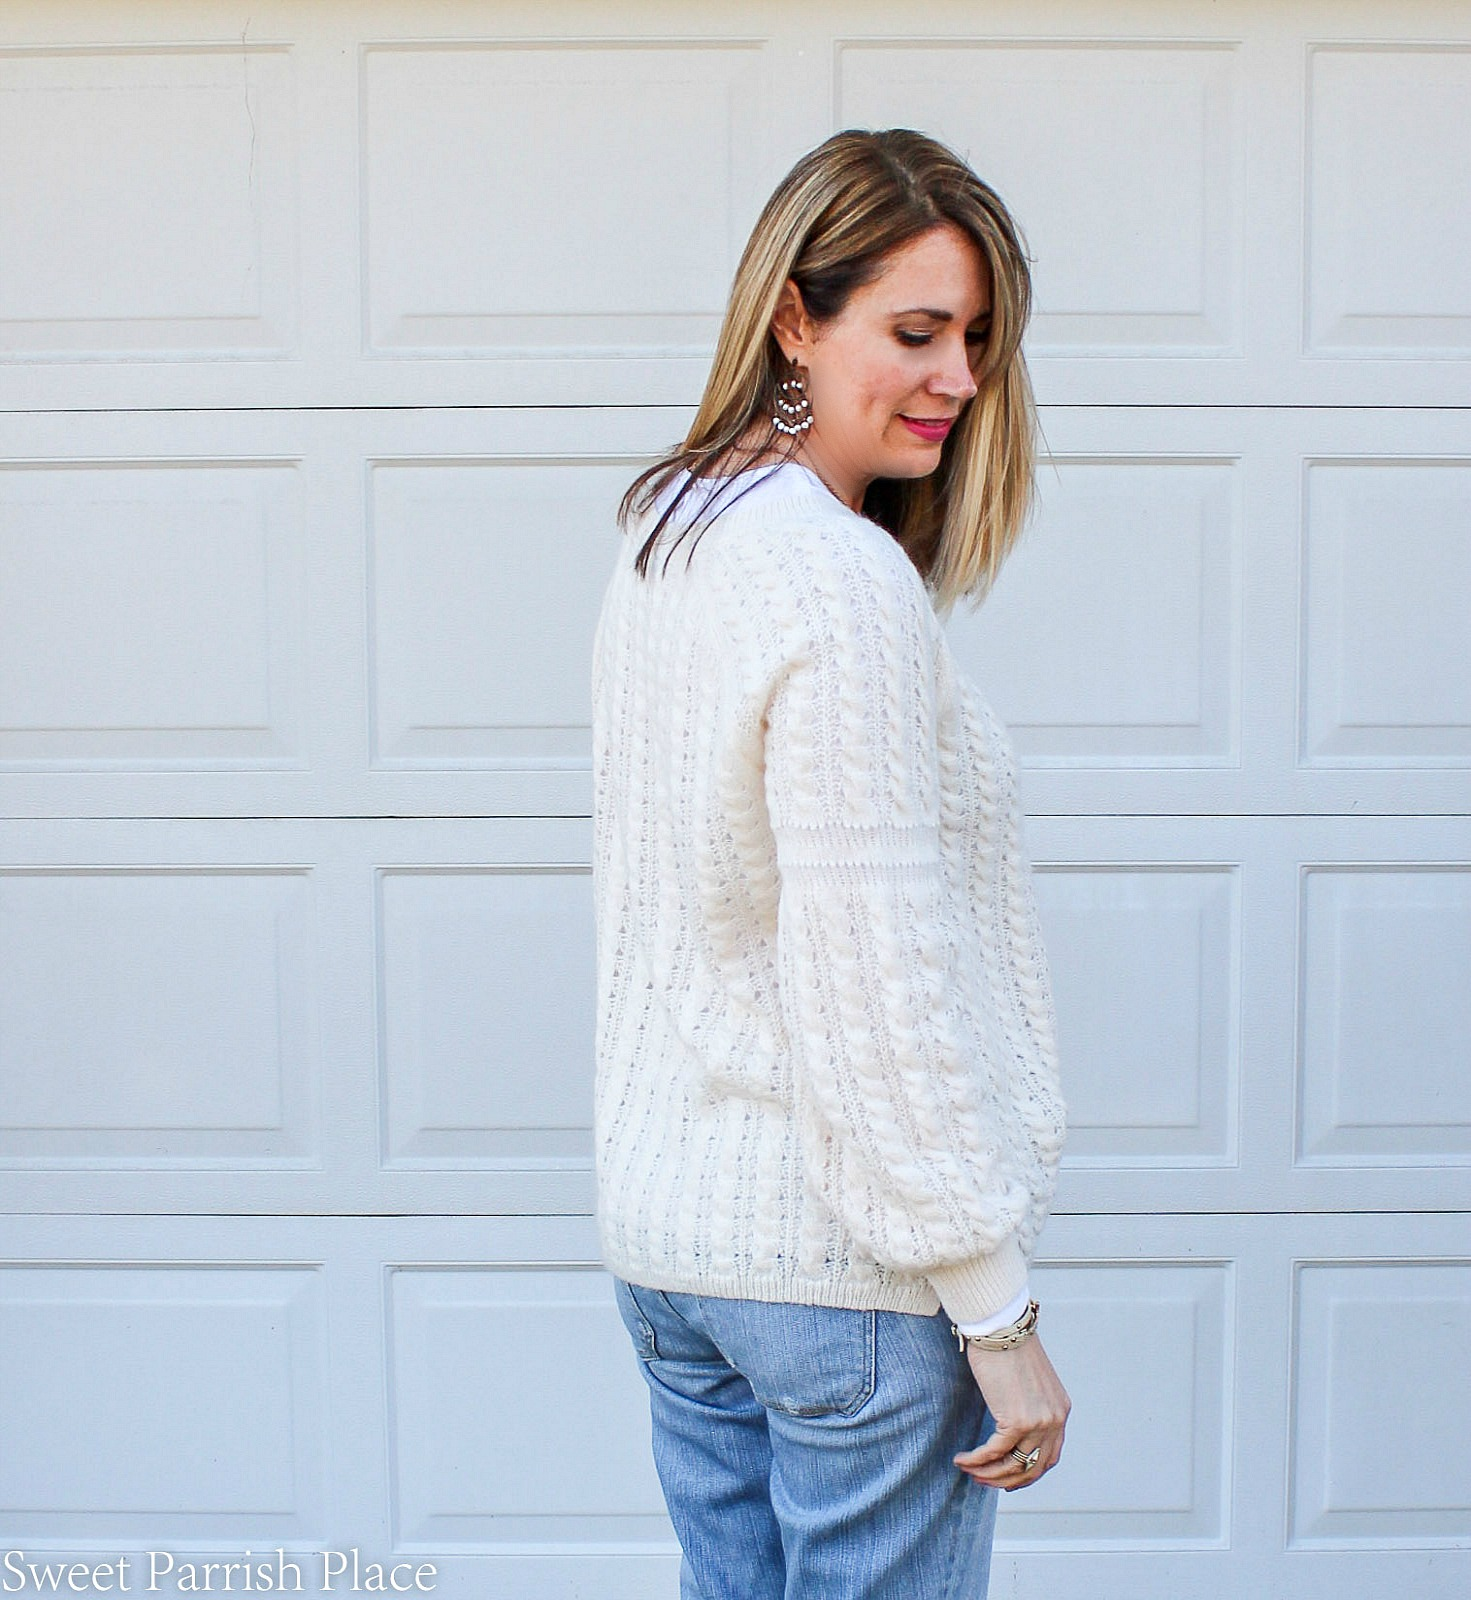 cute sleeve detail on spring sweater